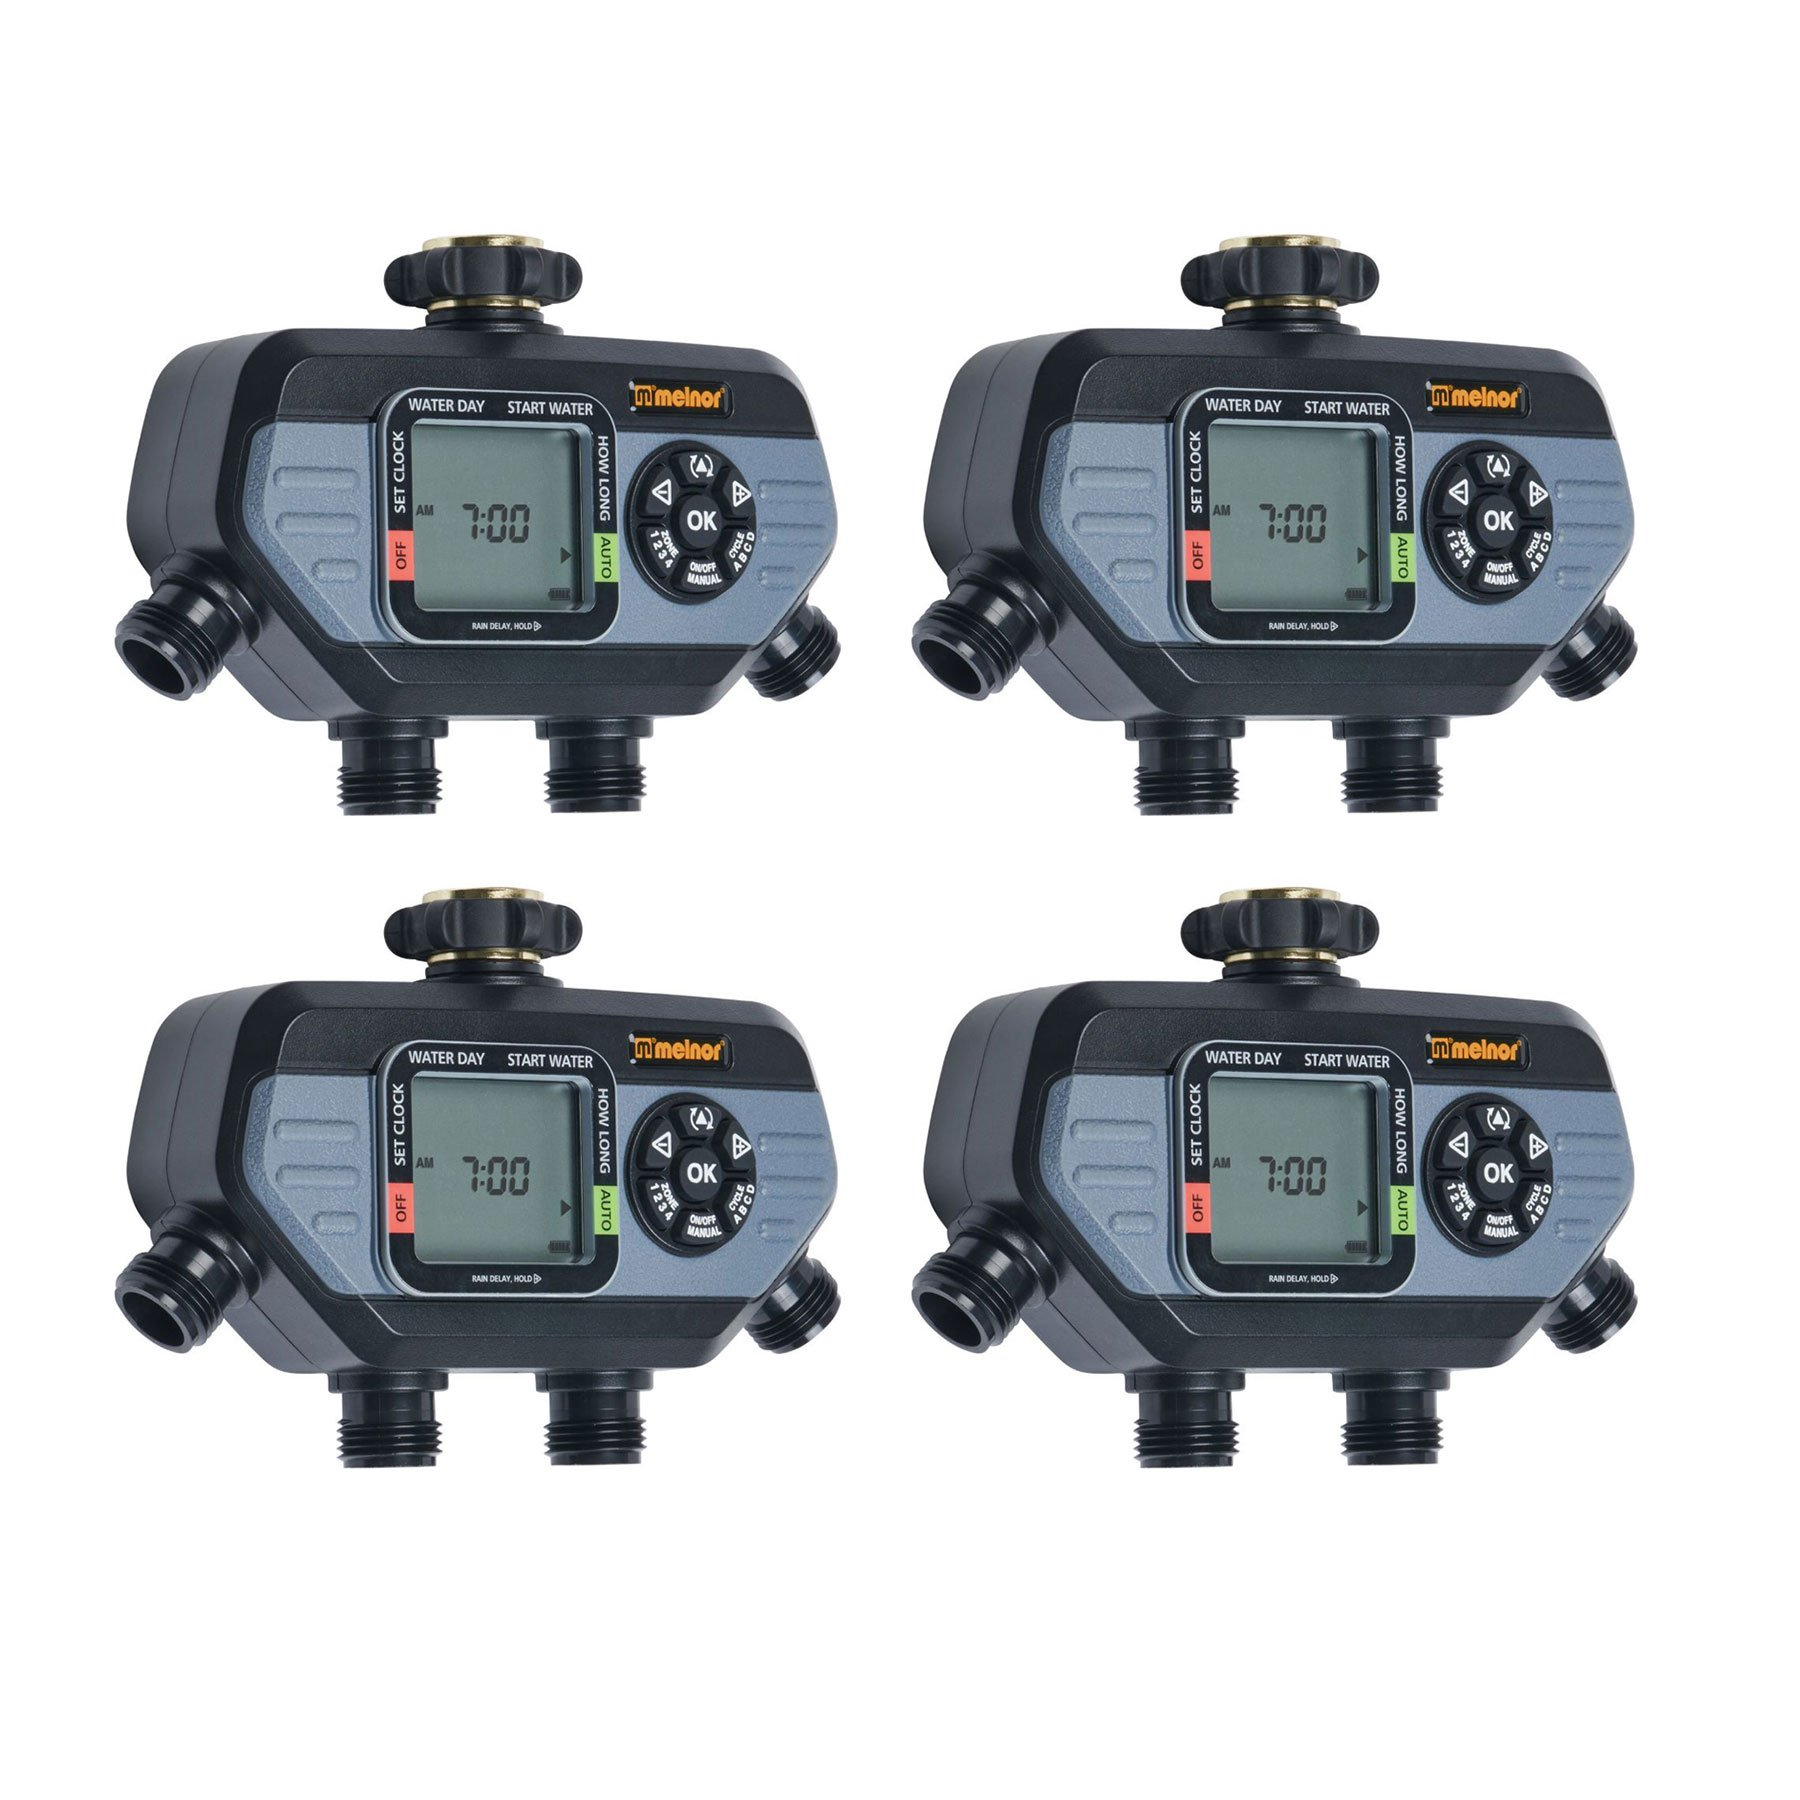 Melnor HydroLogic 4 Zone Digital Water Timer for Garden and Yard Care (4 Pack) by Melnor